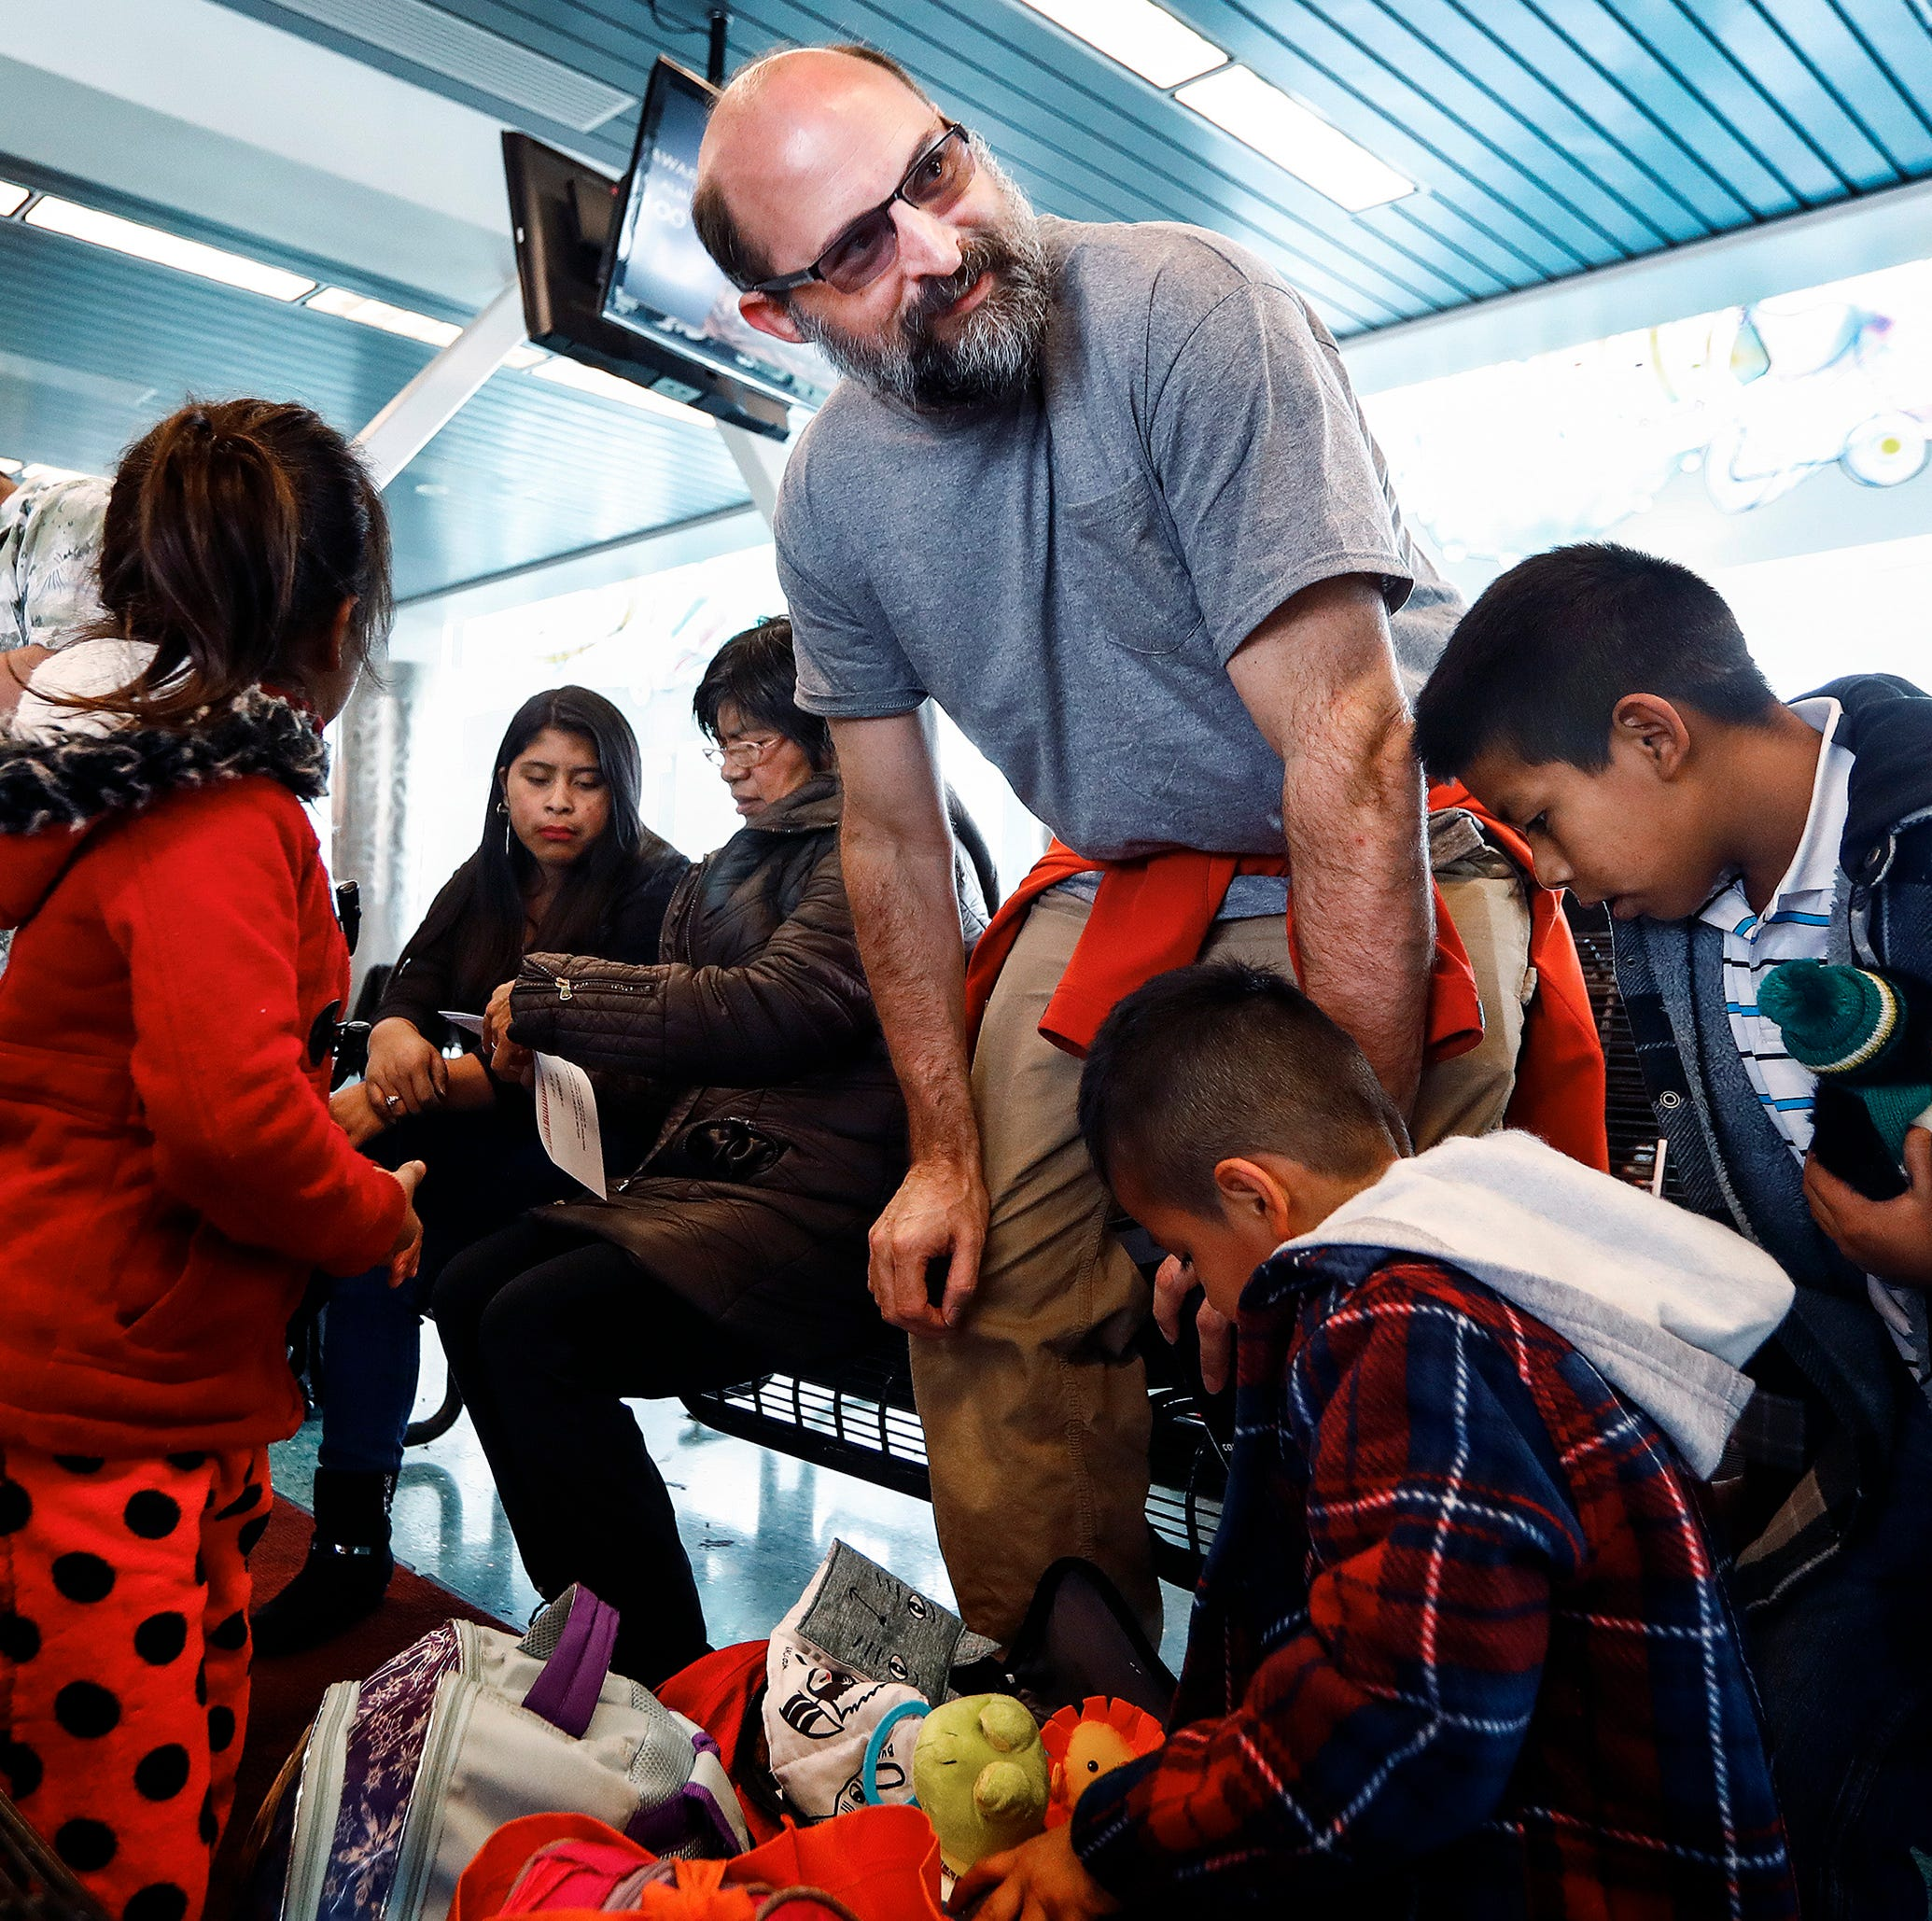 As Passover celebration, honor exodus of Central American refugees to the United States | Opinion